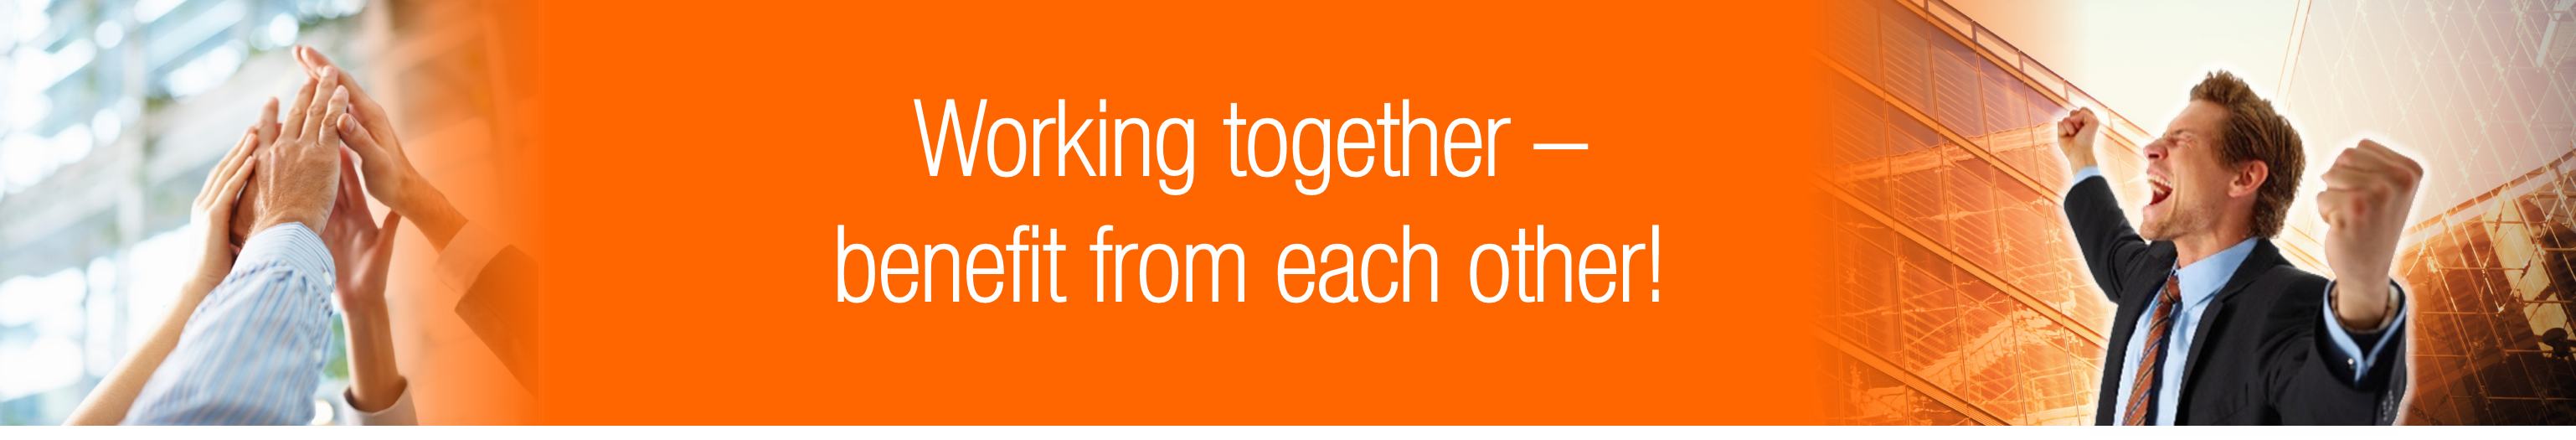 Working together benefit from each other